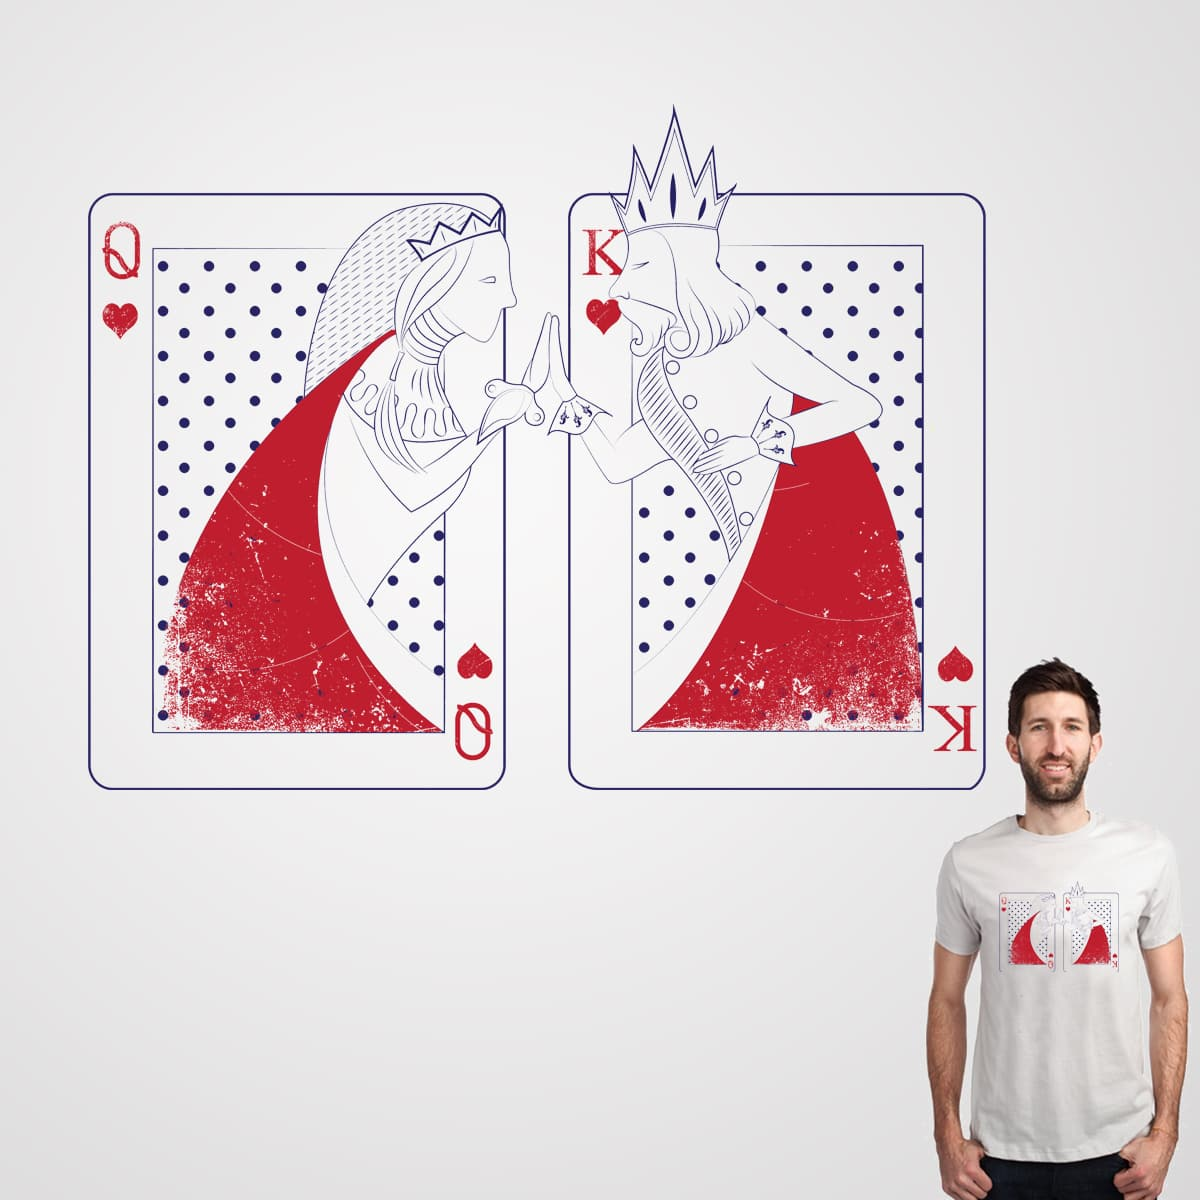 Another game by Loremnzo and RiccardoXIII on Threadless